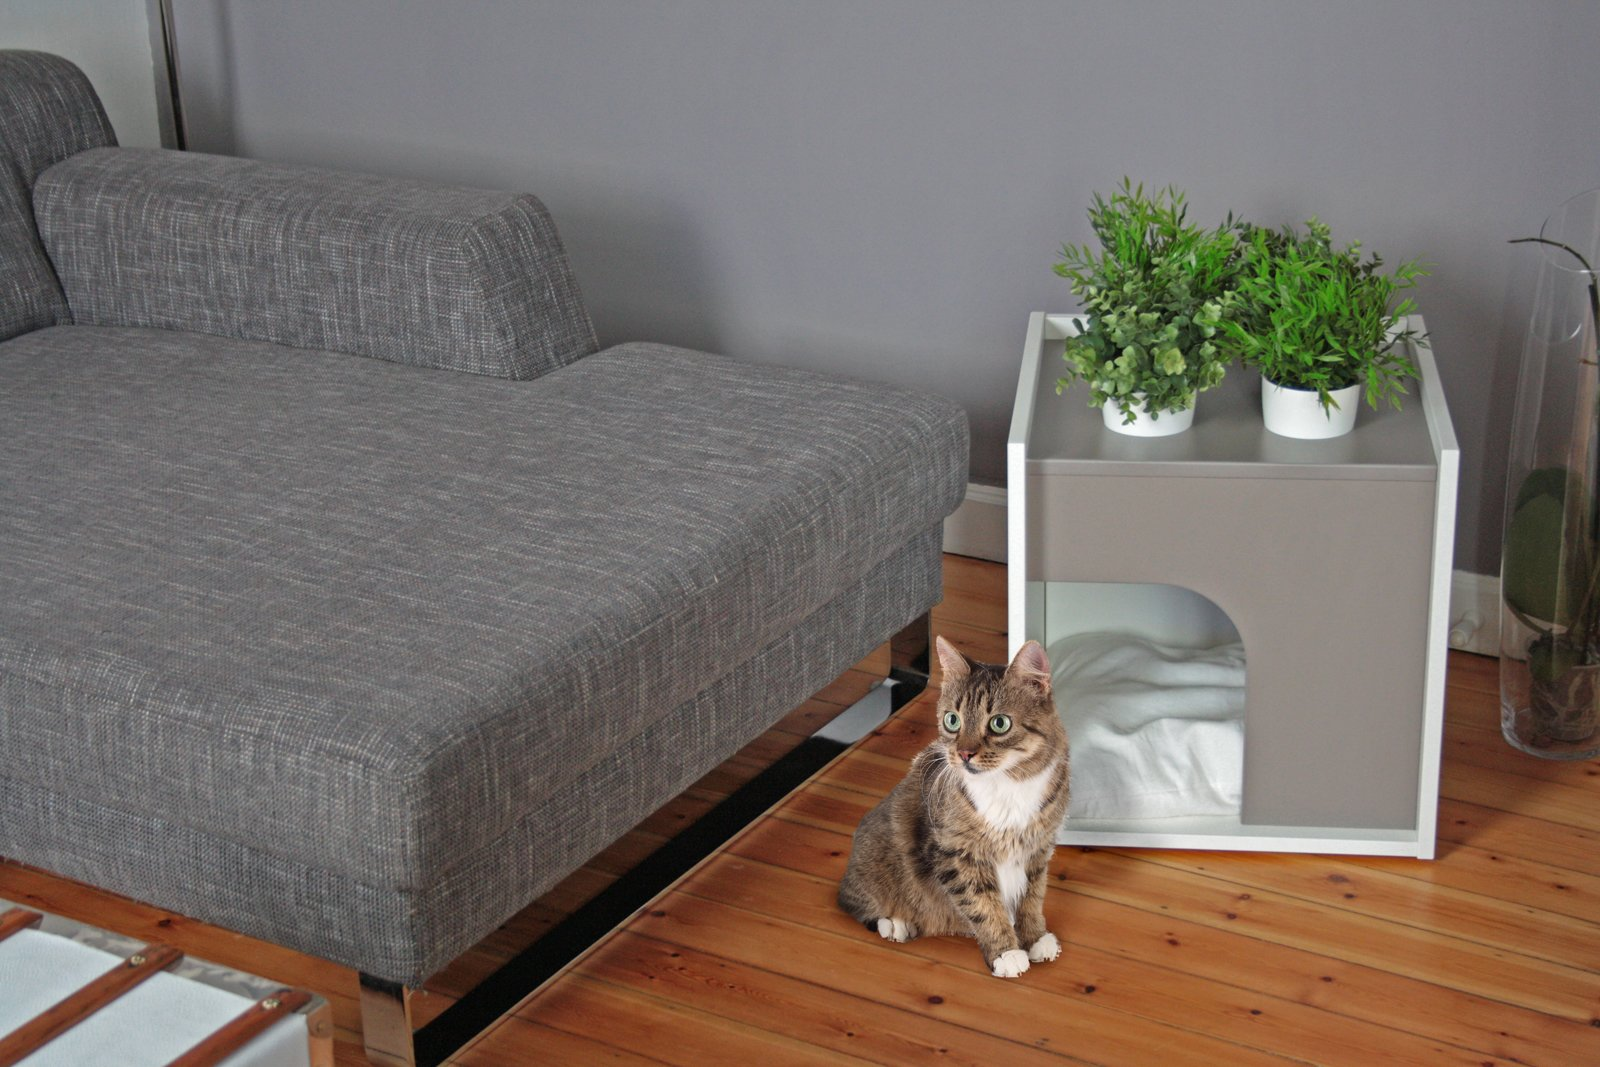 POUSSE CREATIVE'S PET HOUSES  Designers Sebastian Haquet and Thomas Lanthier have a decidedly modern take on shelters for pets. Their Lille-based company, Pousse Creative, was founded in 2010 with a chicken run designed for suburban environments and quickly grew to encompass a complete line of modern dwellings for rabbits, cats, dogs, and birds. 45 Pets in Beautiful Modern Homes - Photo 14 of 45